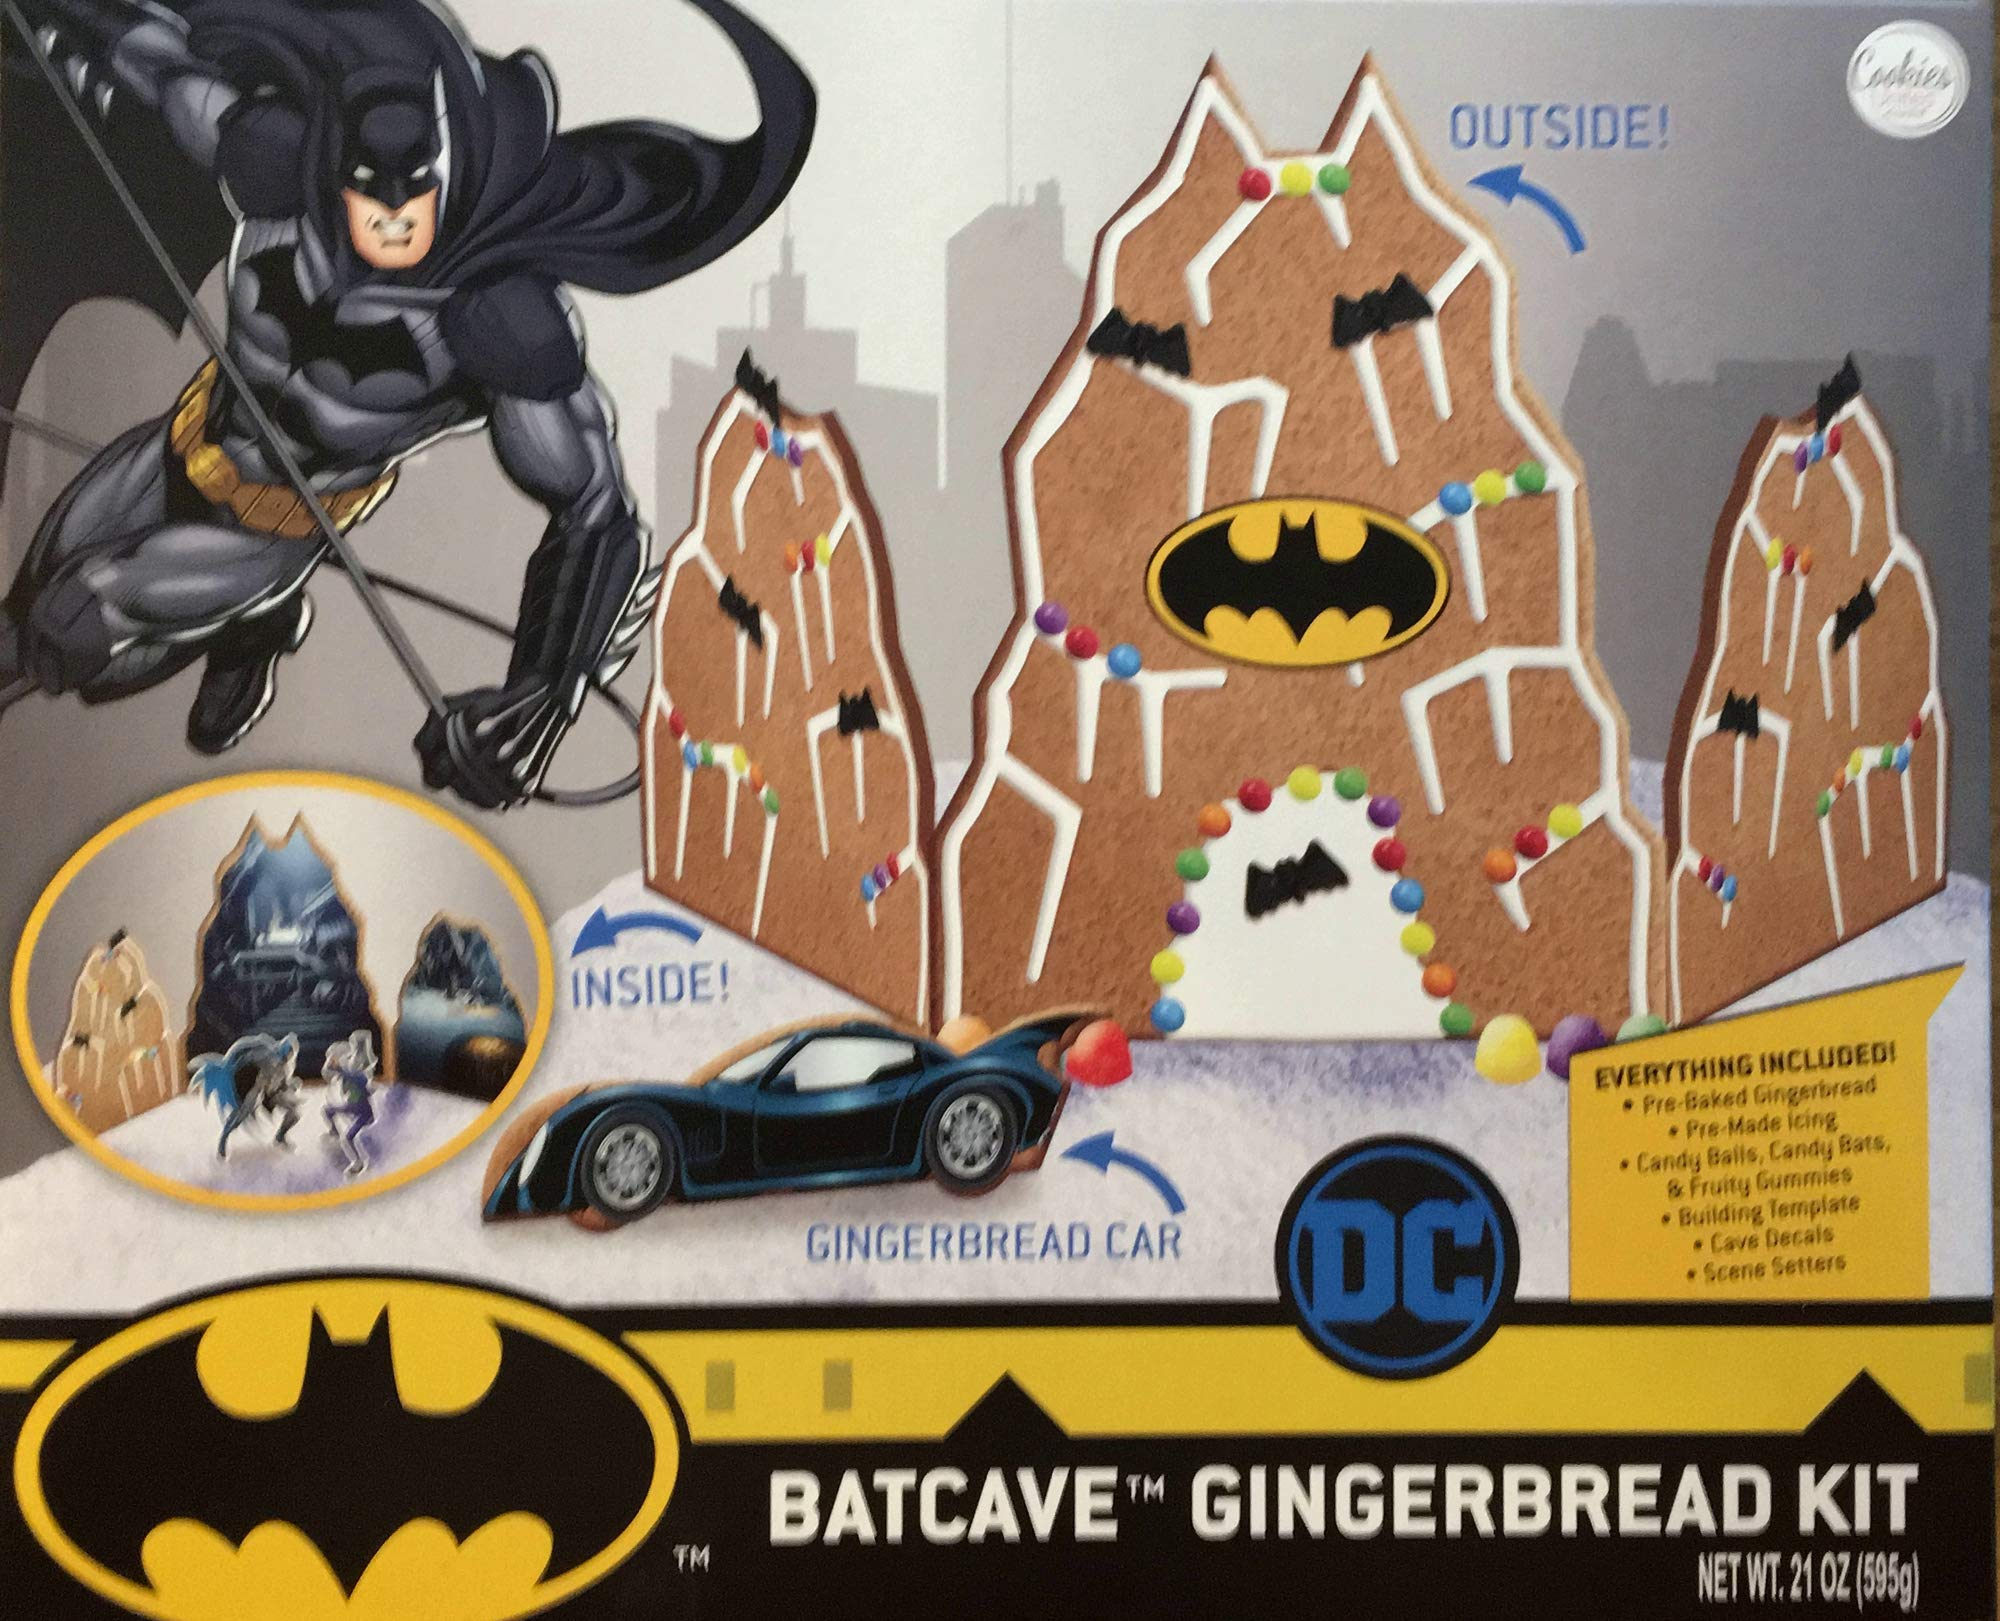 Batcave Gingerbread House Kit by Cookies United